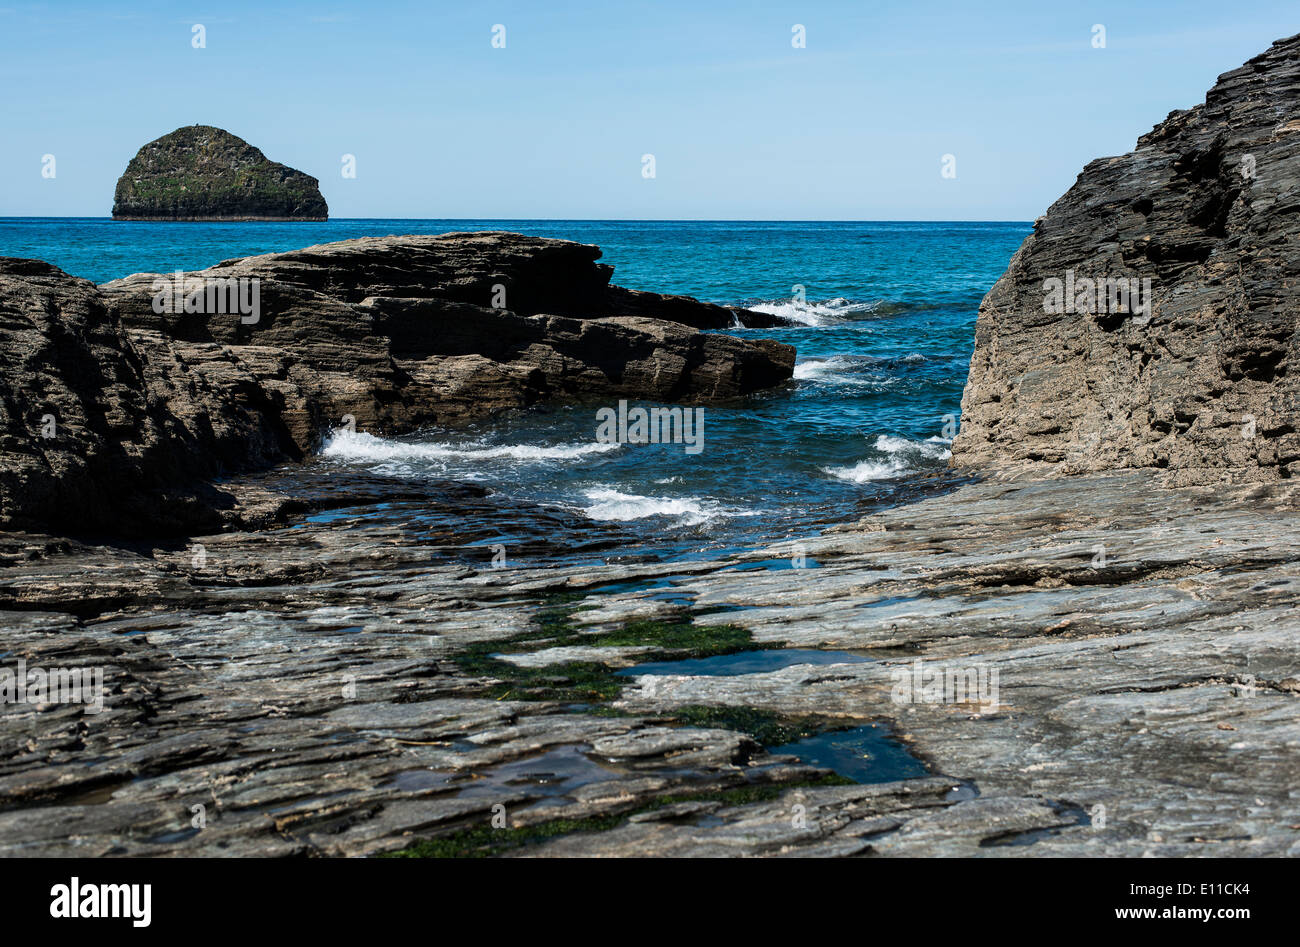 Wadebridge beach, cornwall, rocky beach - Stock Image